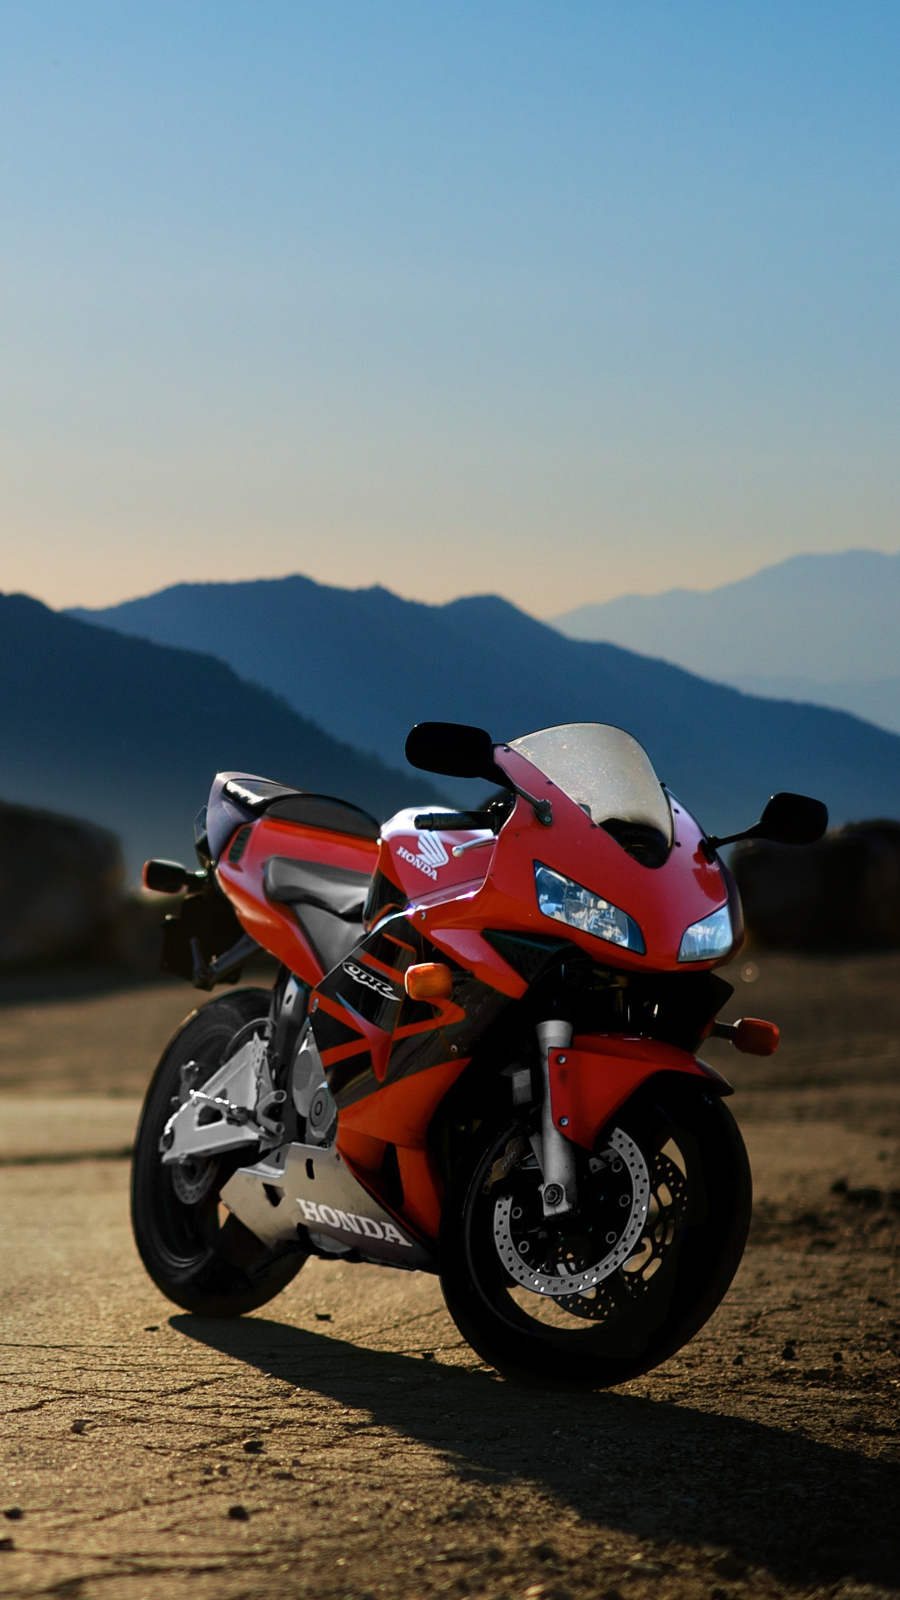 Duke Quotes Wallpaper Honda Cbr600rr Red Motorcycle Iphone Wallpaper Iphone